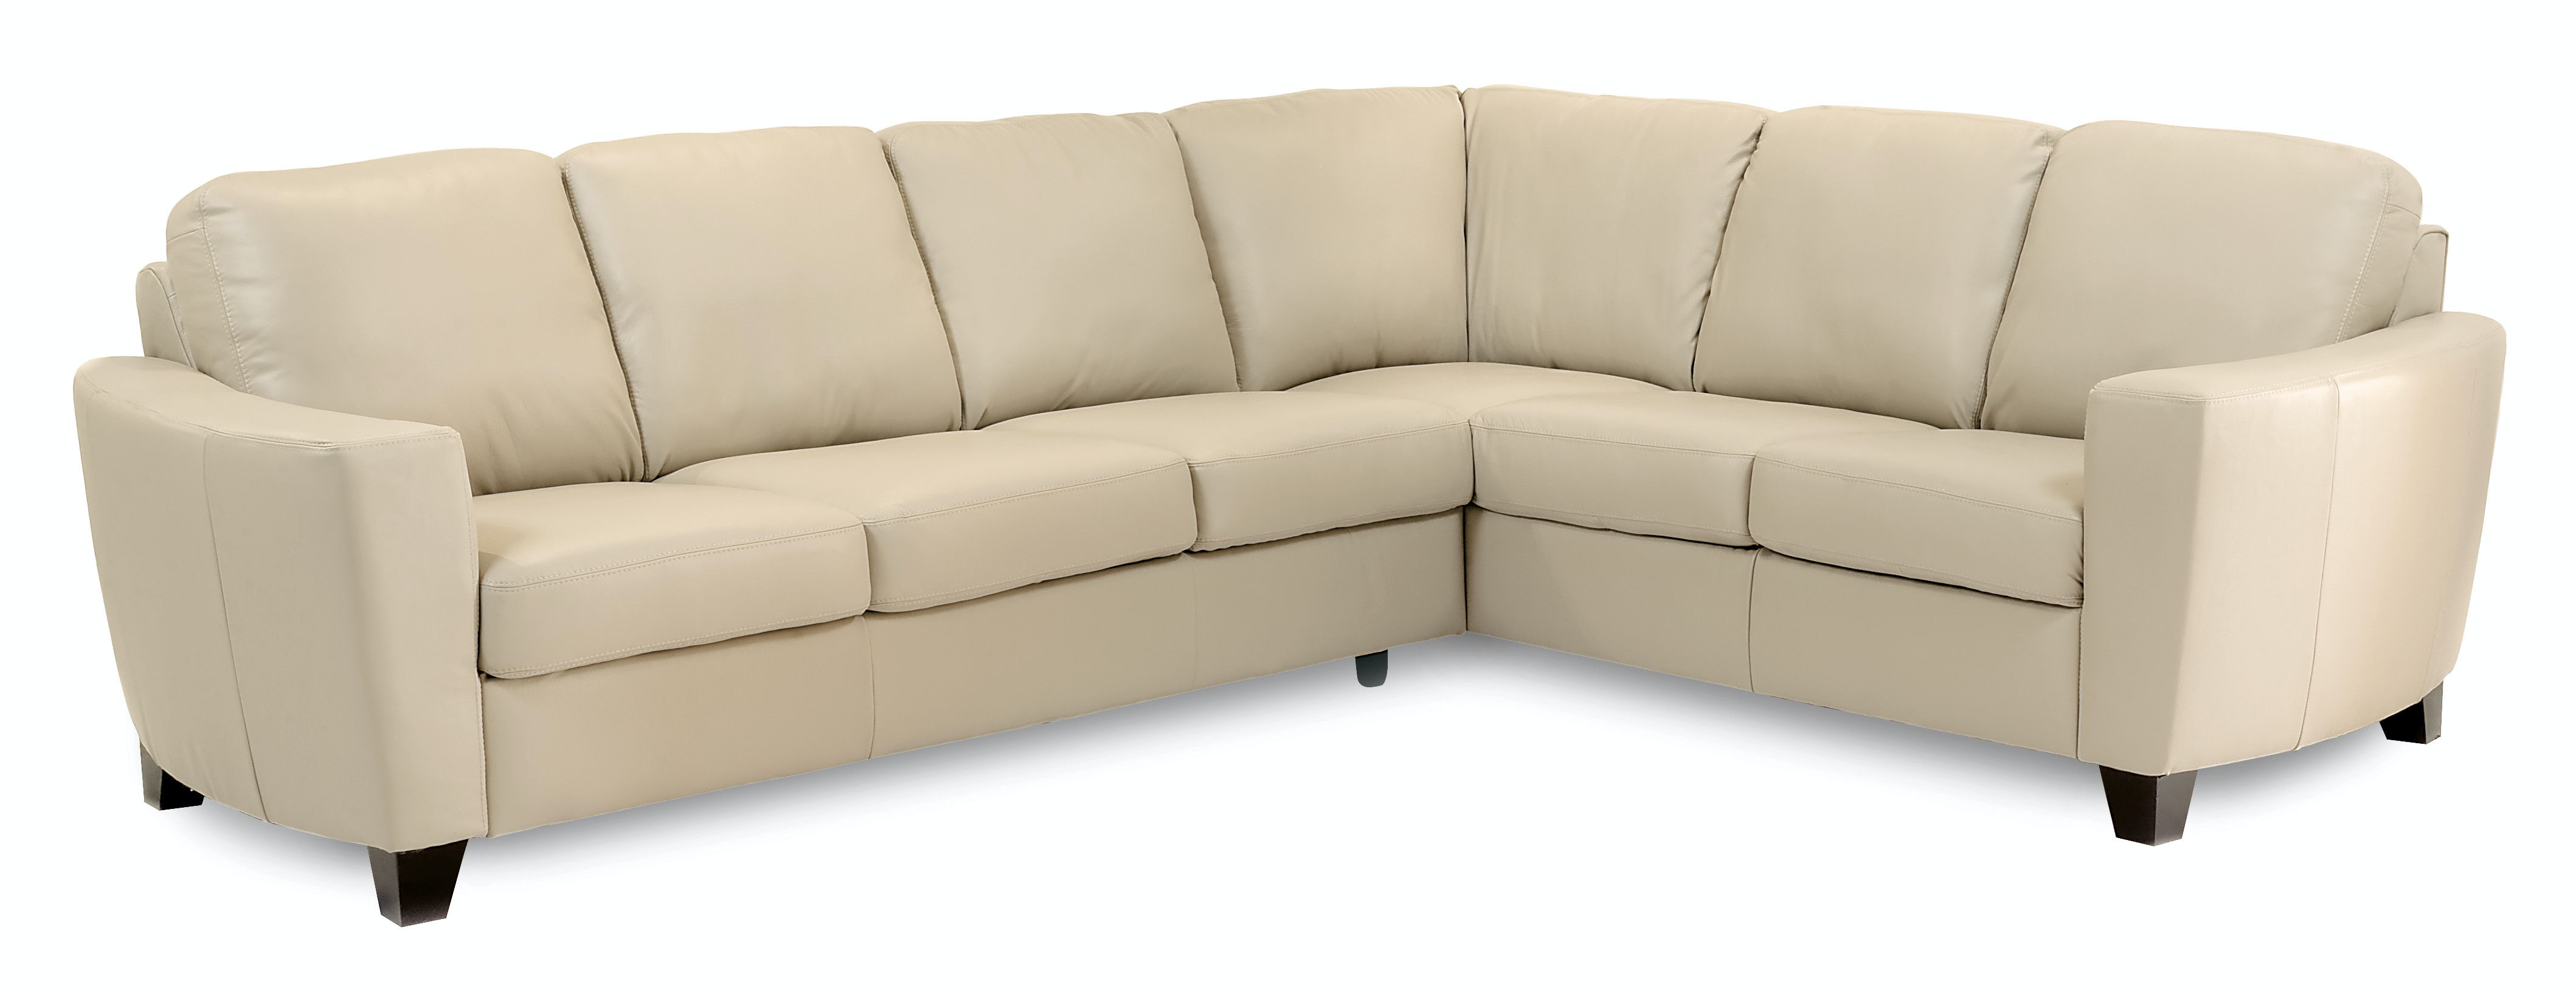 Palliser Furniture Living Room Leeds Sectional 77328 Sectional At Home  Inspirations Thomasville